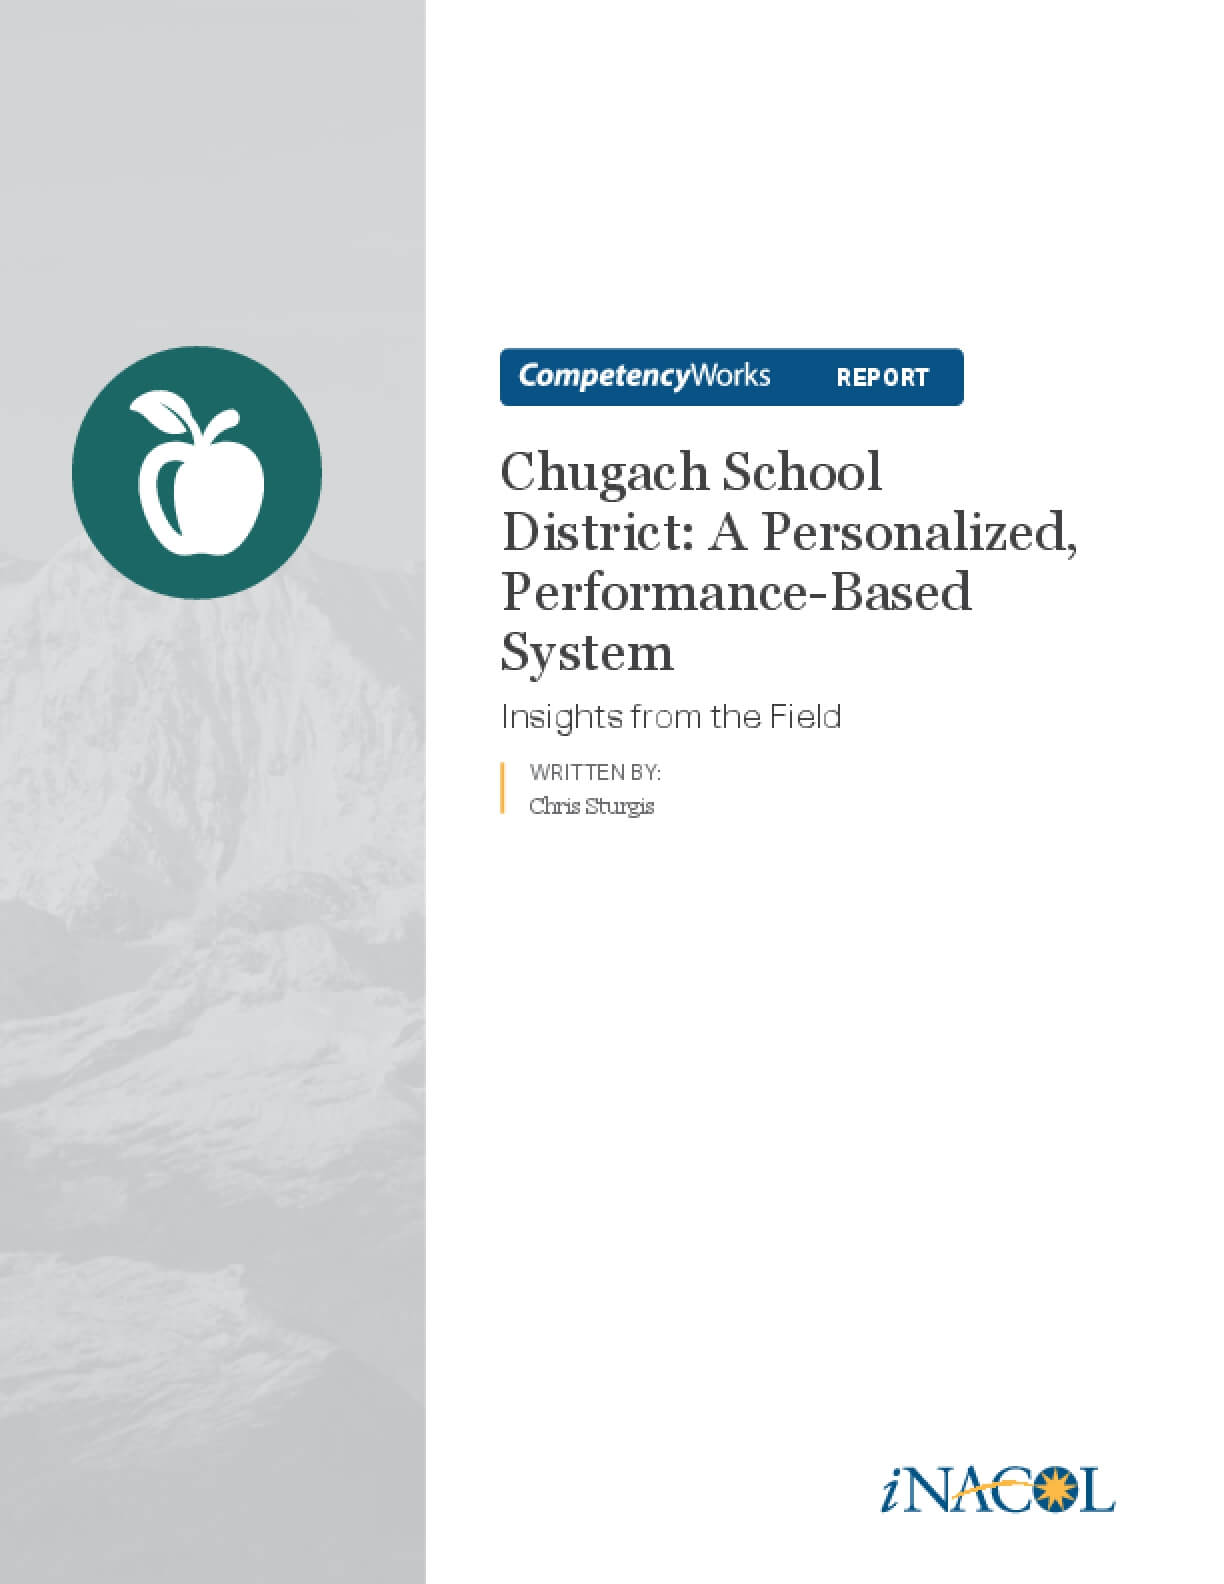 Chugach School District: A Personalized, Performance-Based System - Insights from the Field